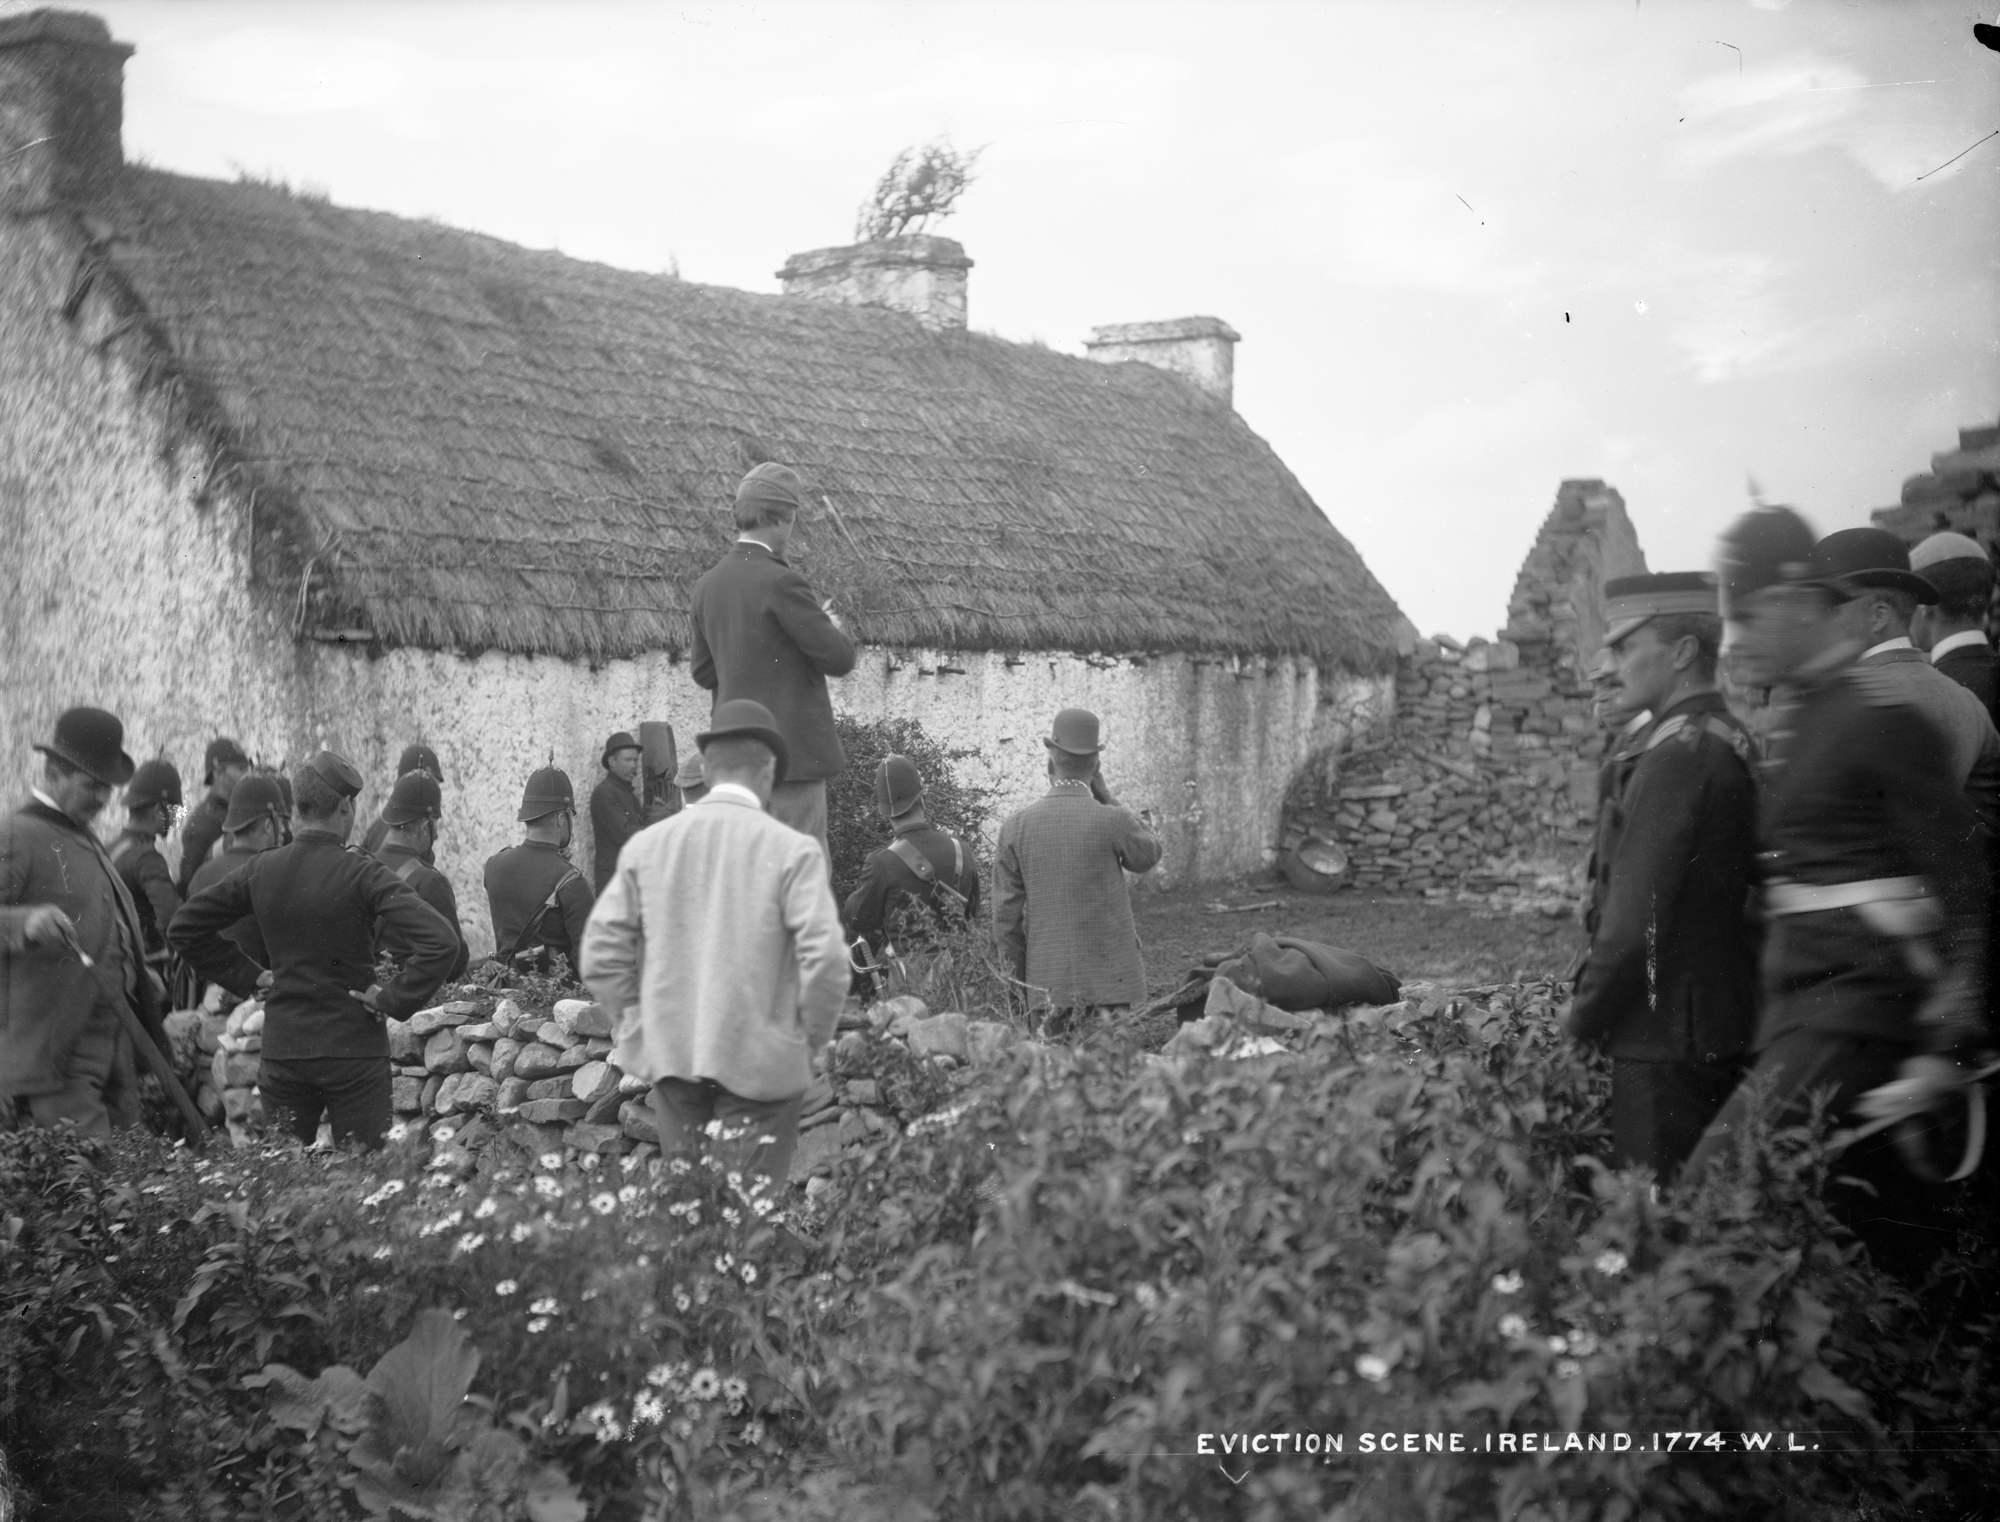 Eviction scene, Ireland